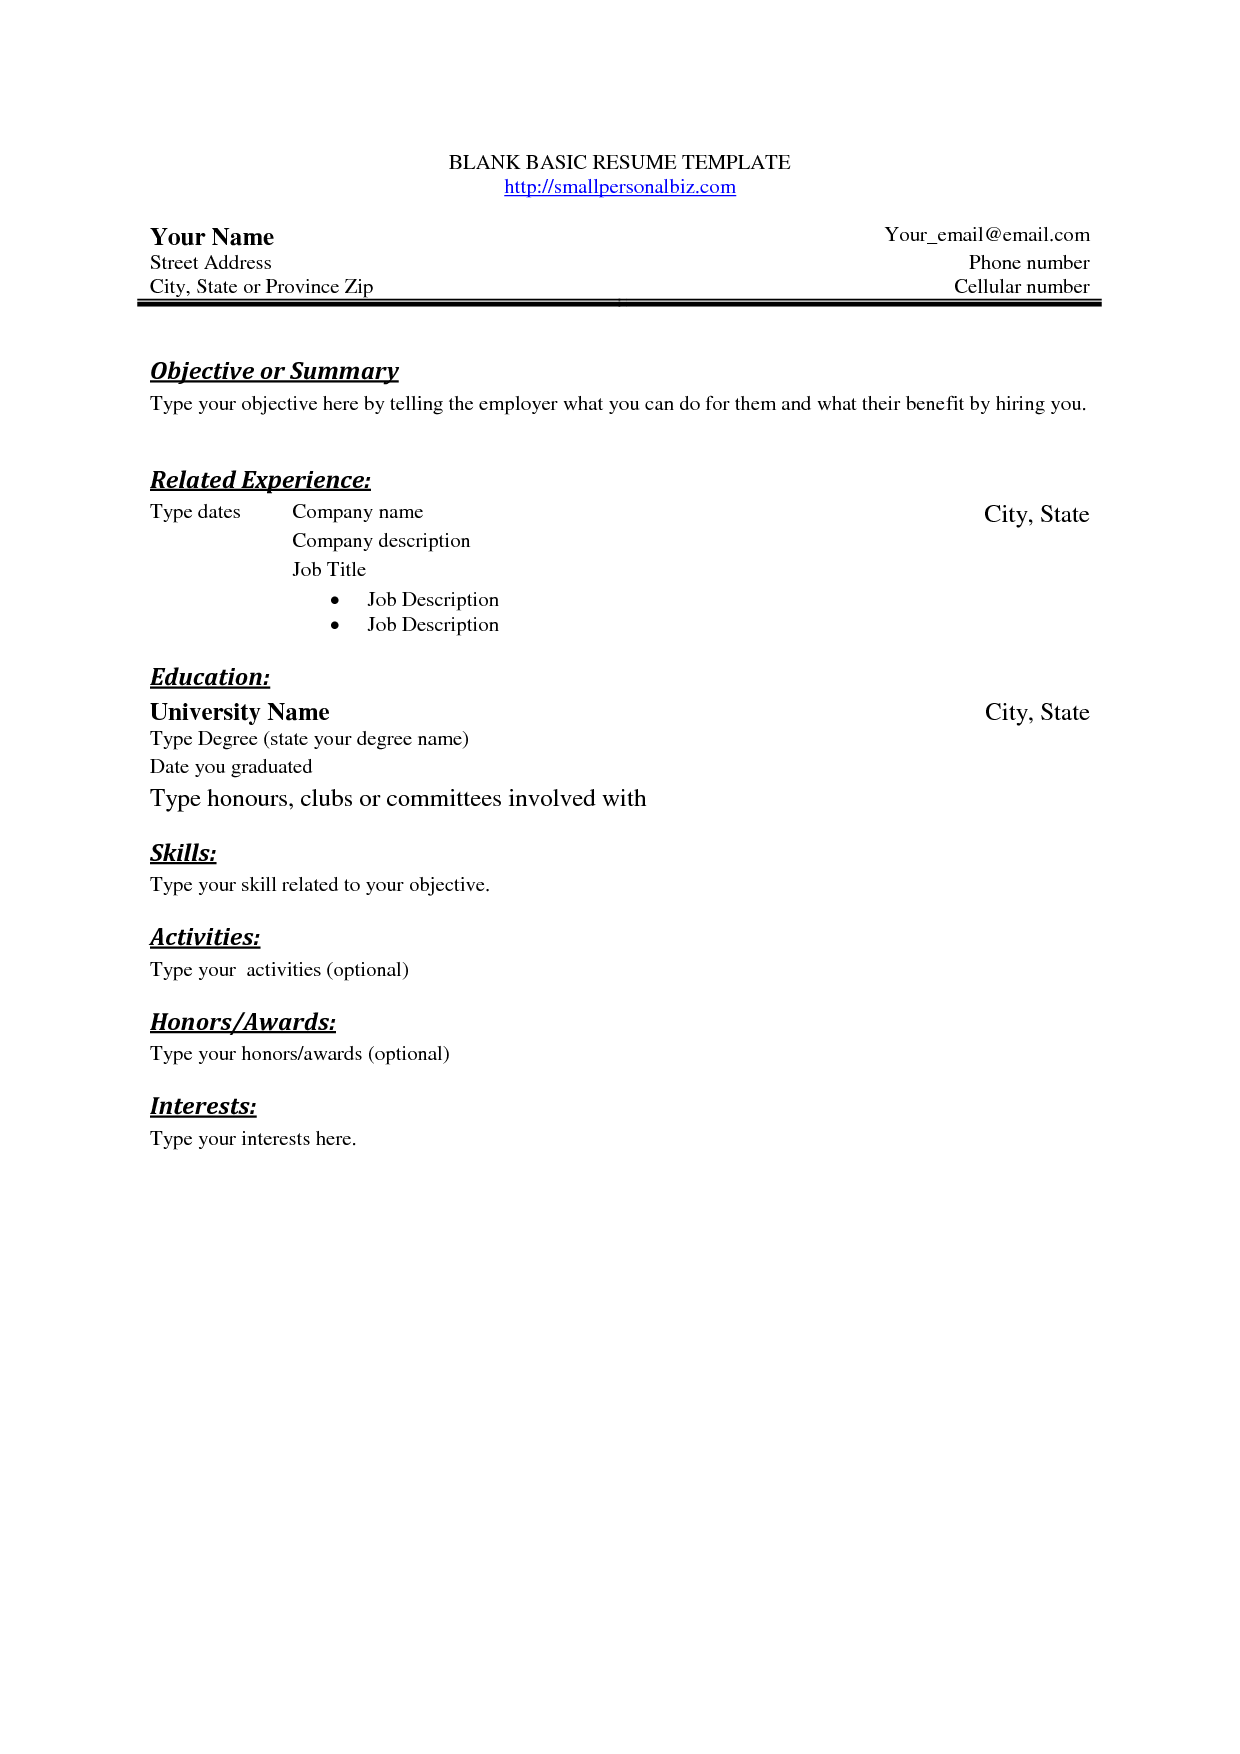 free basic blank resume template